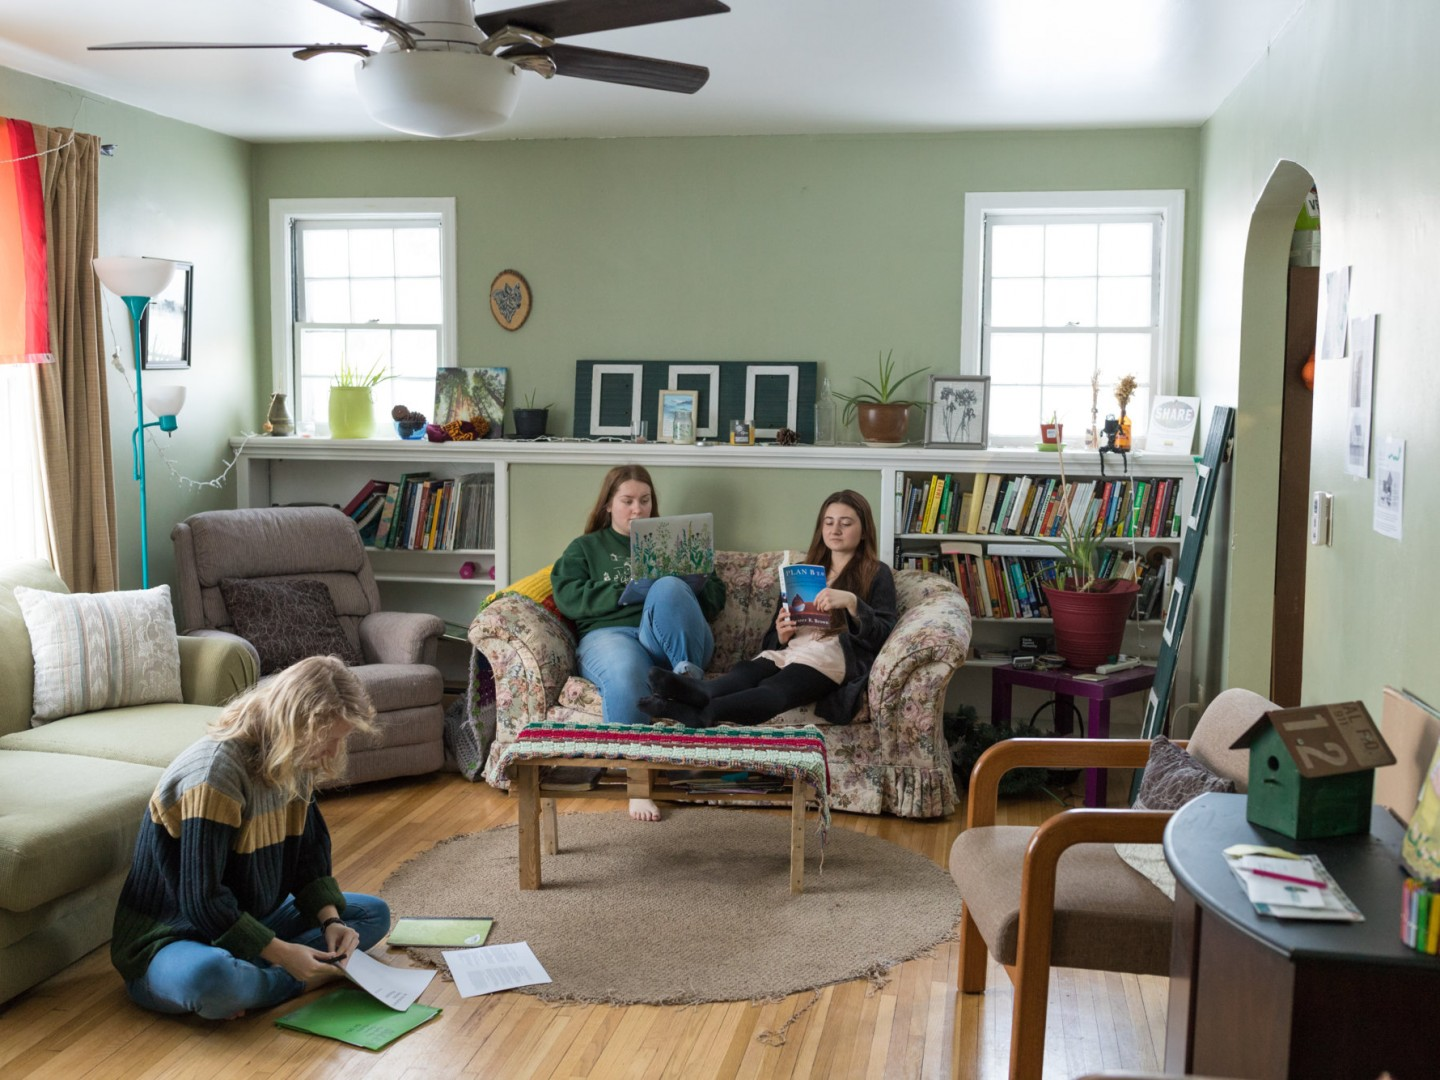 Eco House residents studying in livingroom